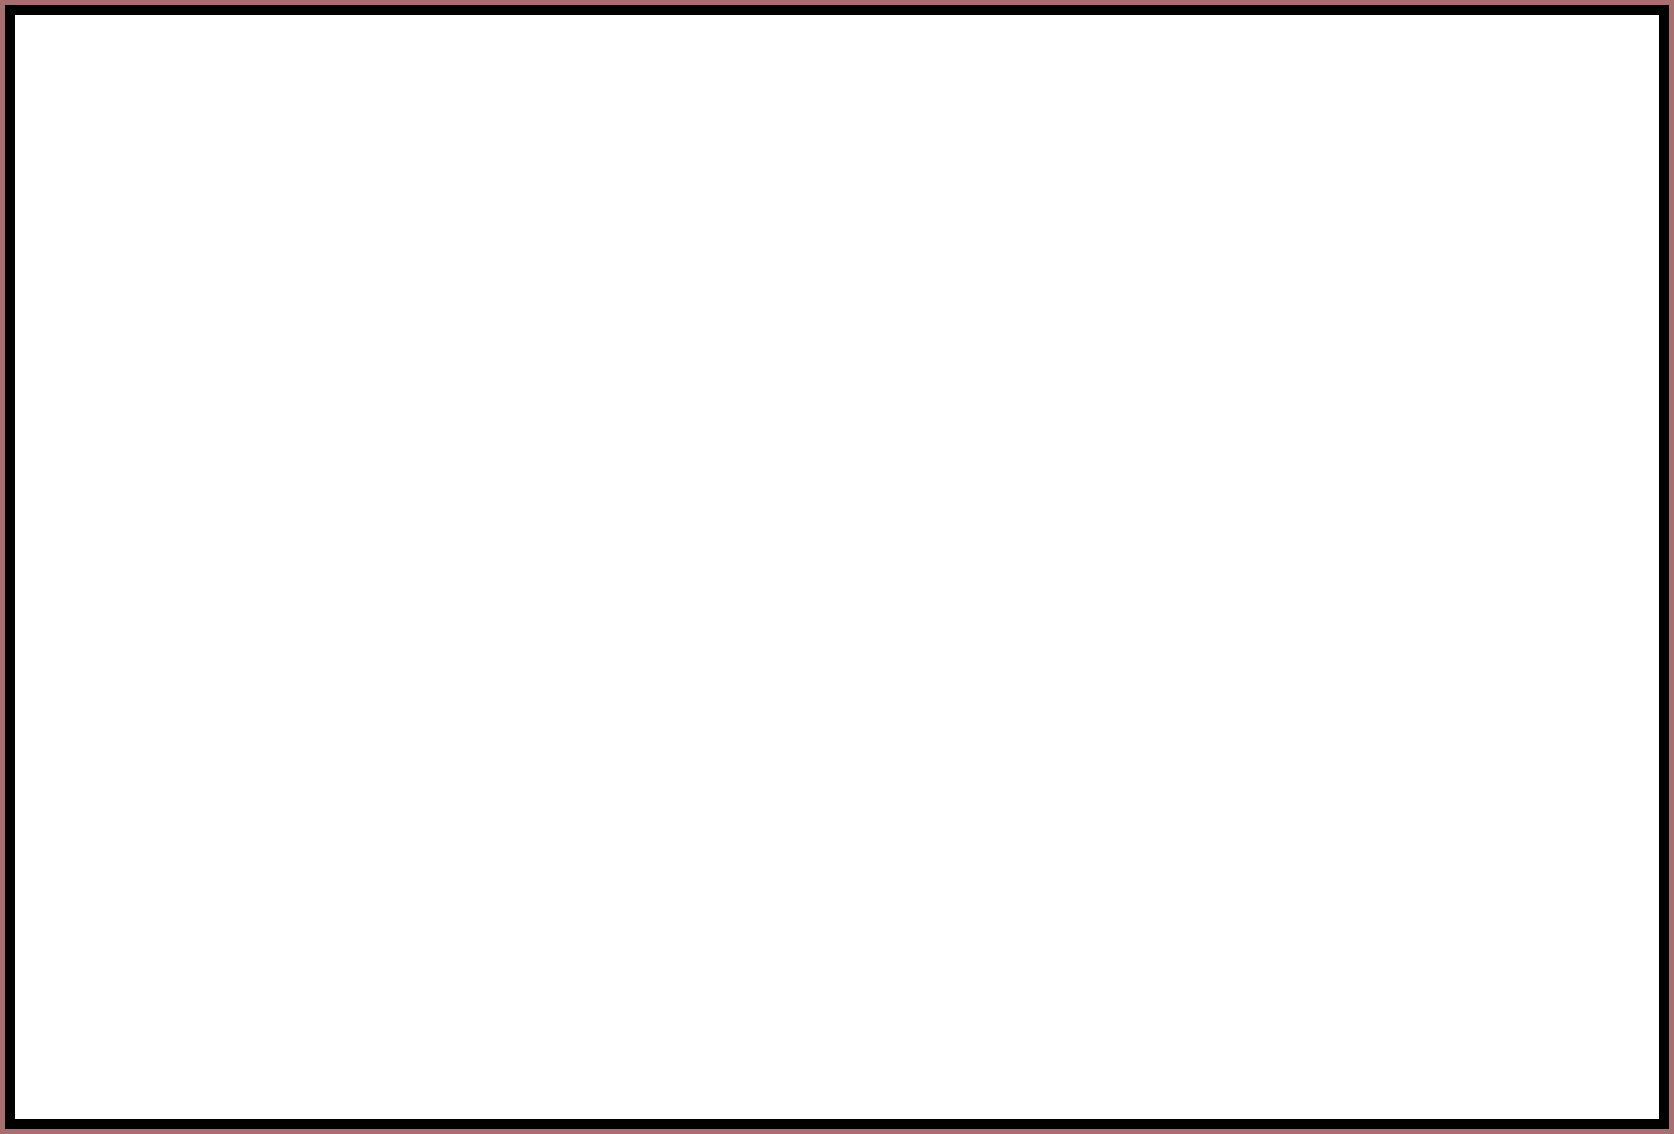 Simple frame png. Black transparent image arts